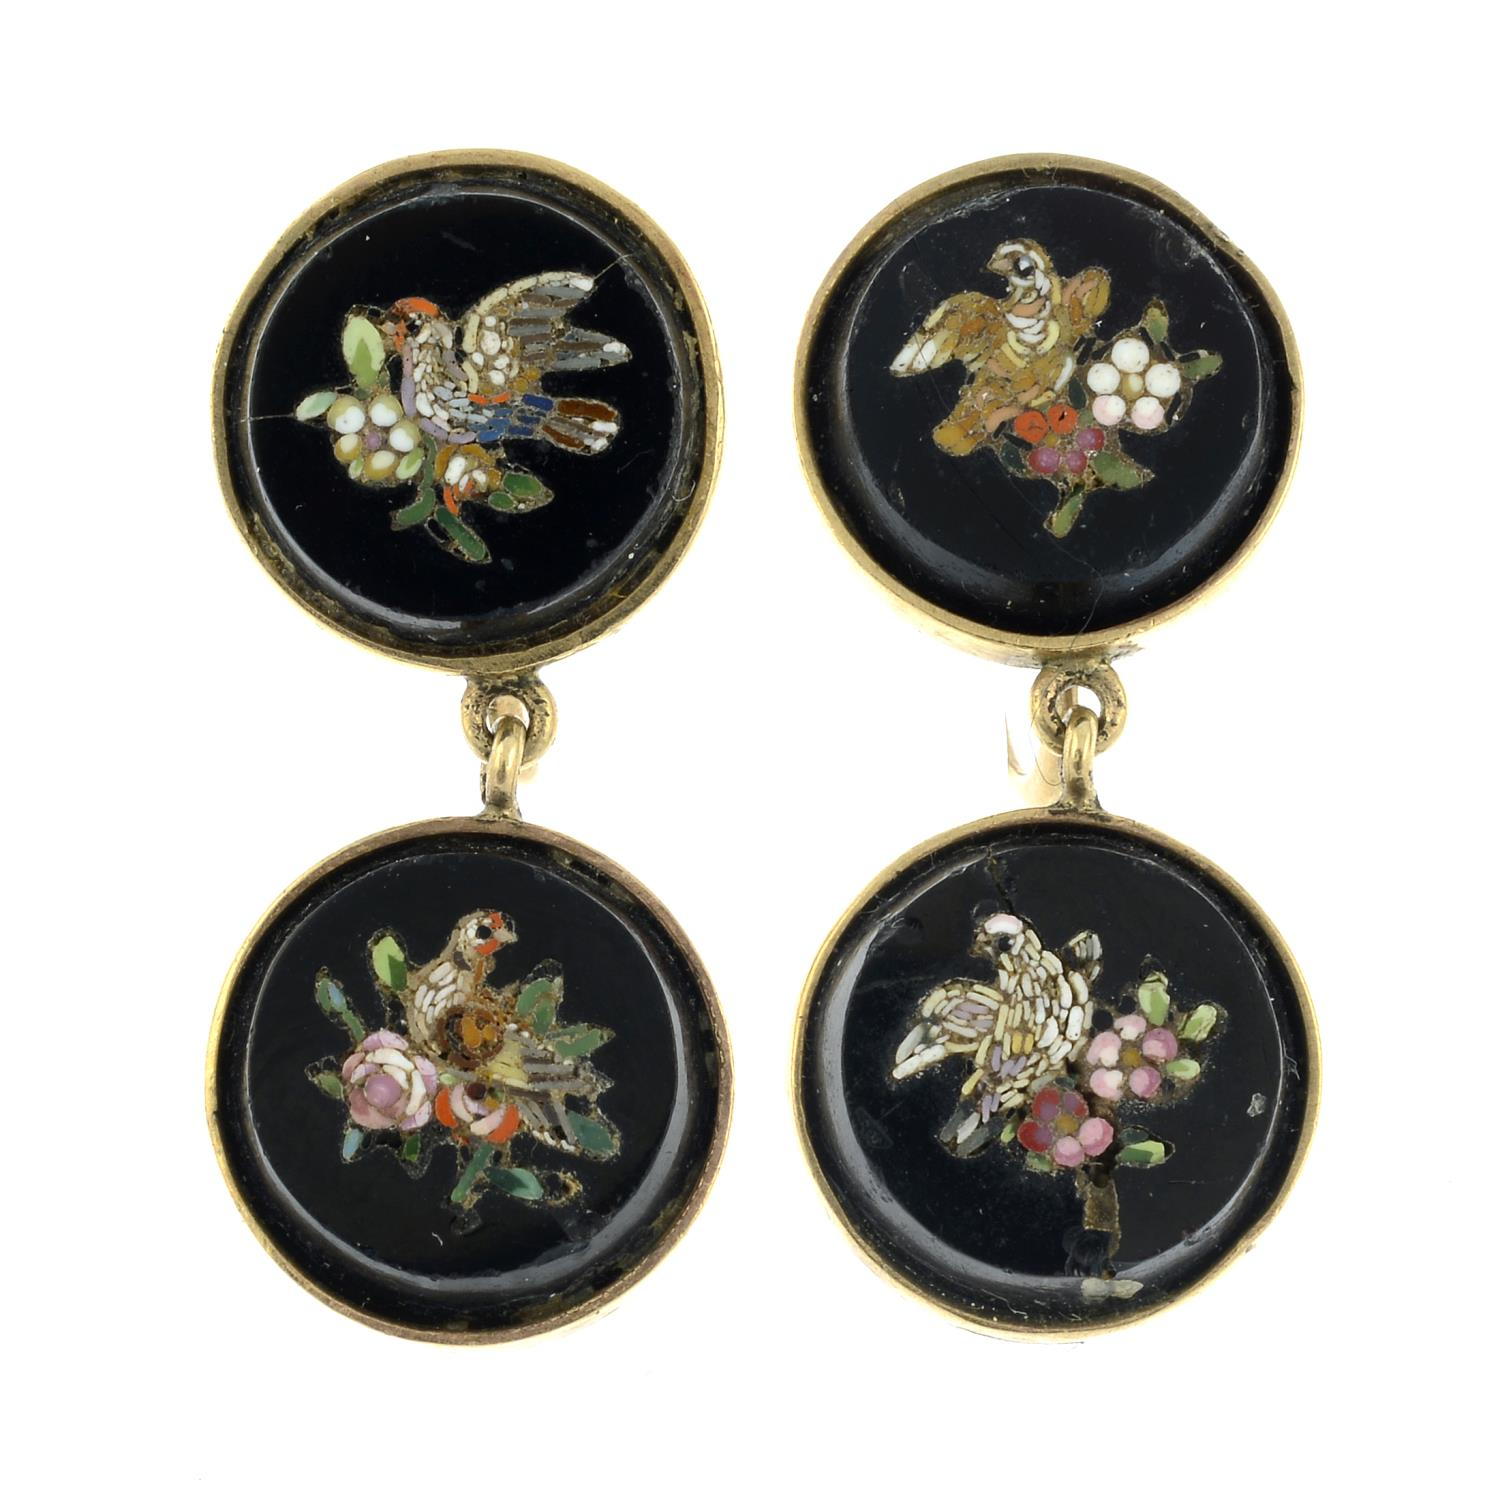 A pair of micro mosaic earrings, featuring bird and floral motifs.Stamped 10kt.Lengths 2.9cms.